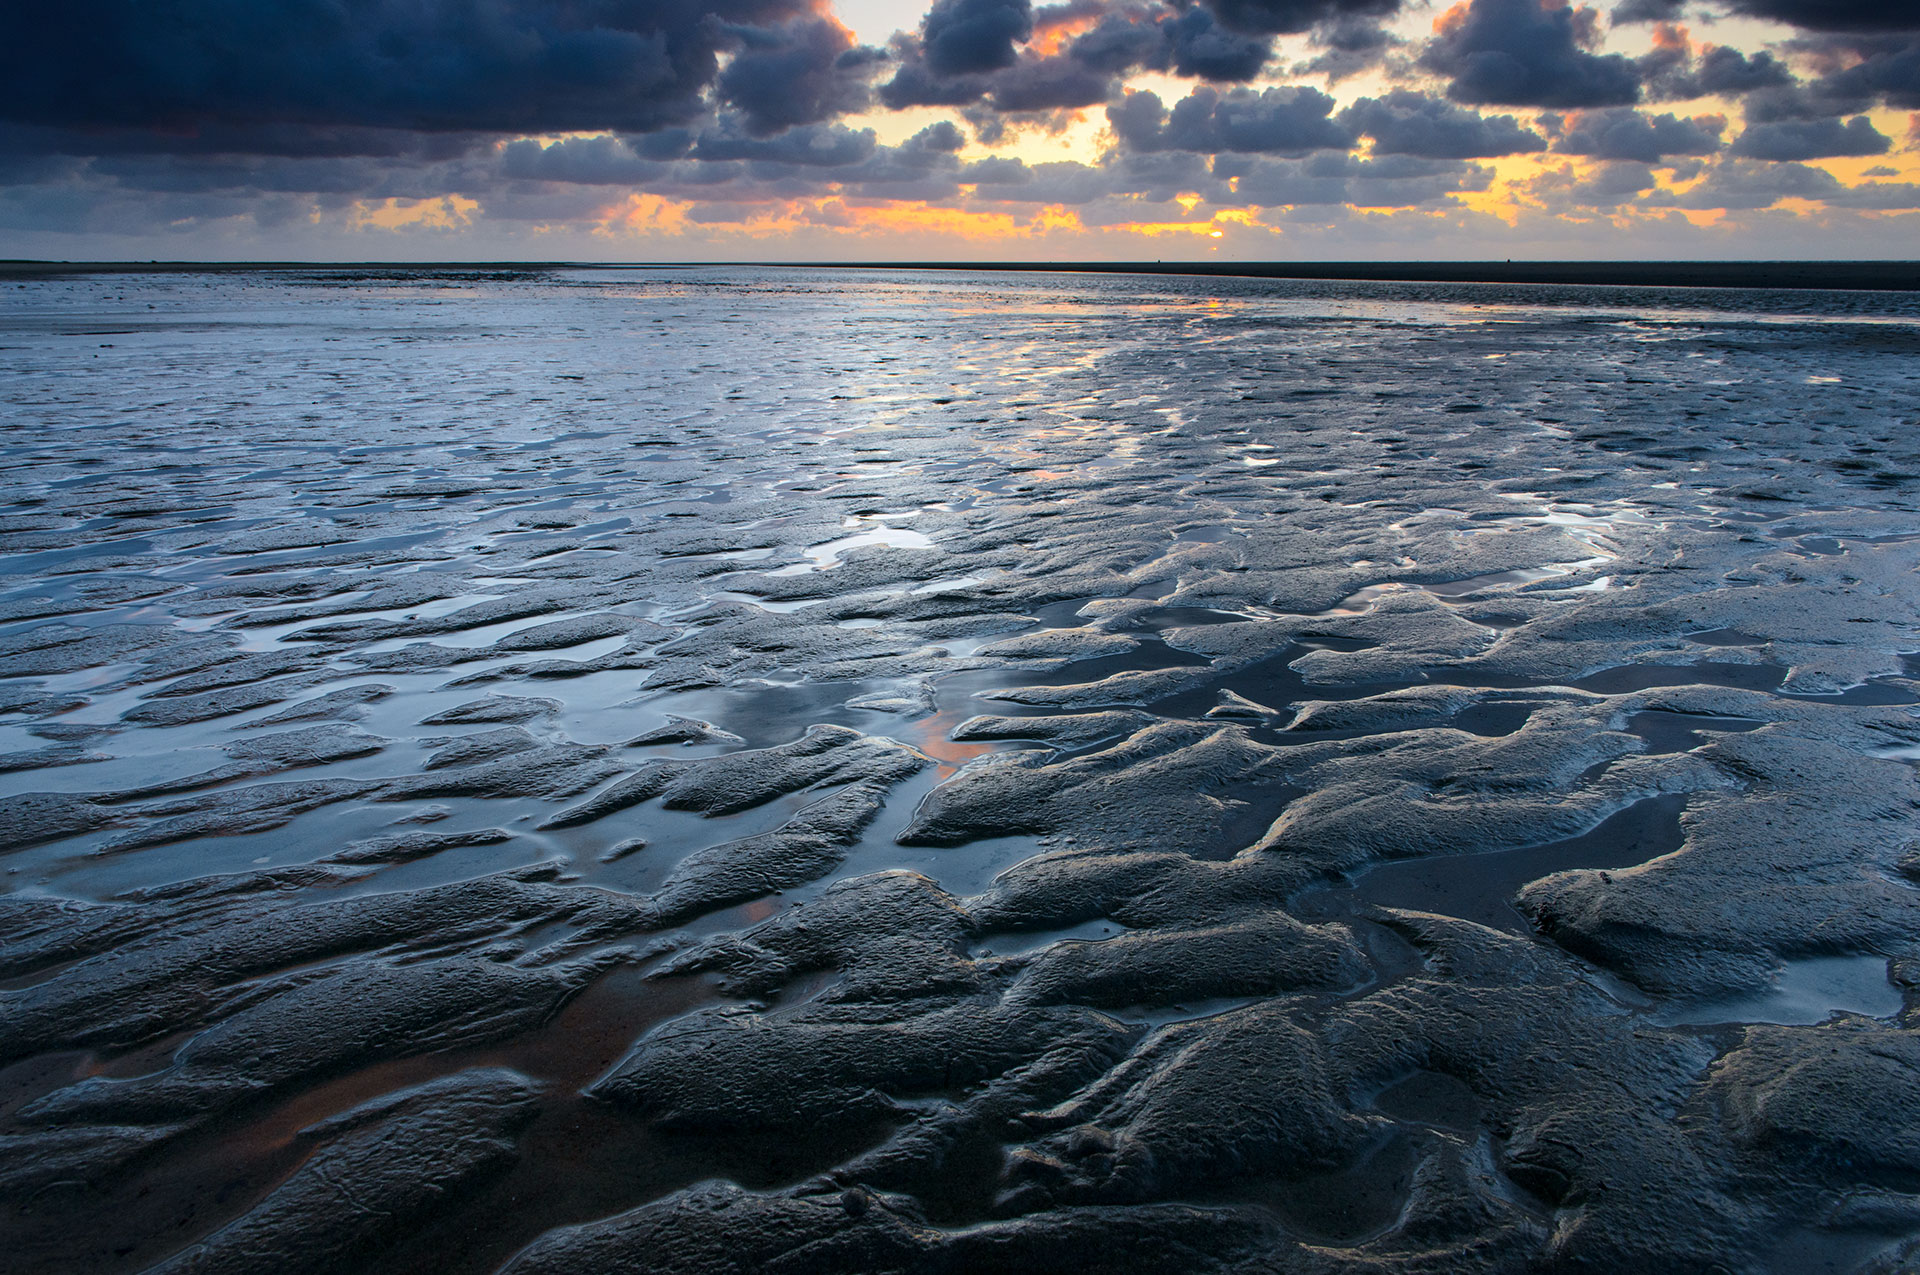 Kwade Hoek beach at low tide at sunset, with patterns.